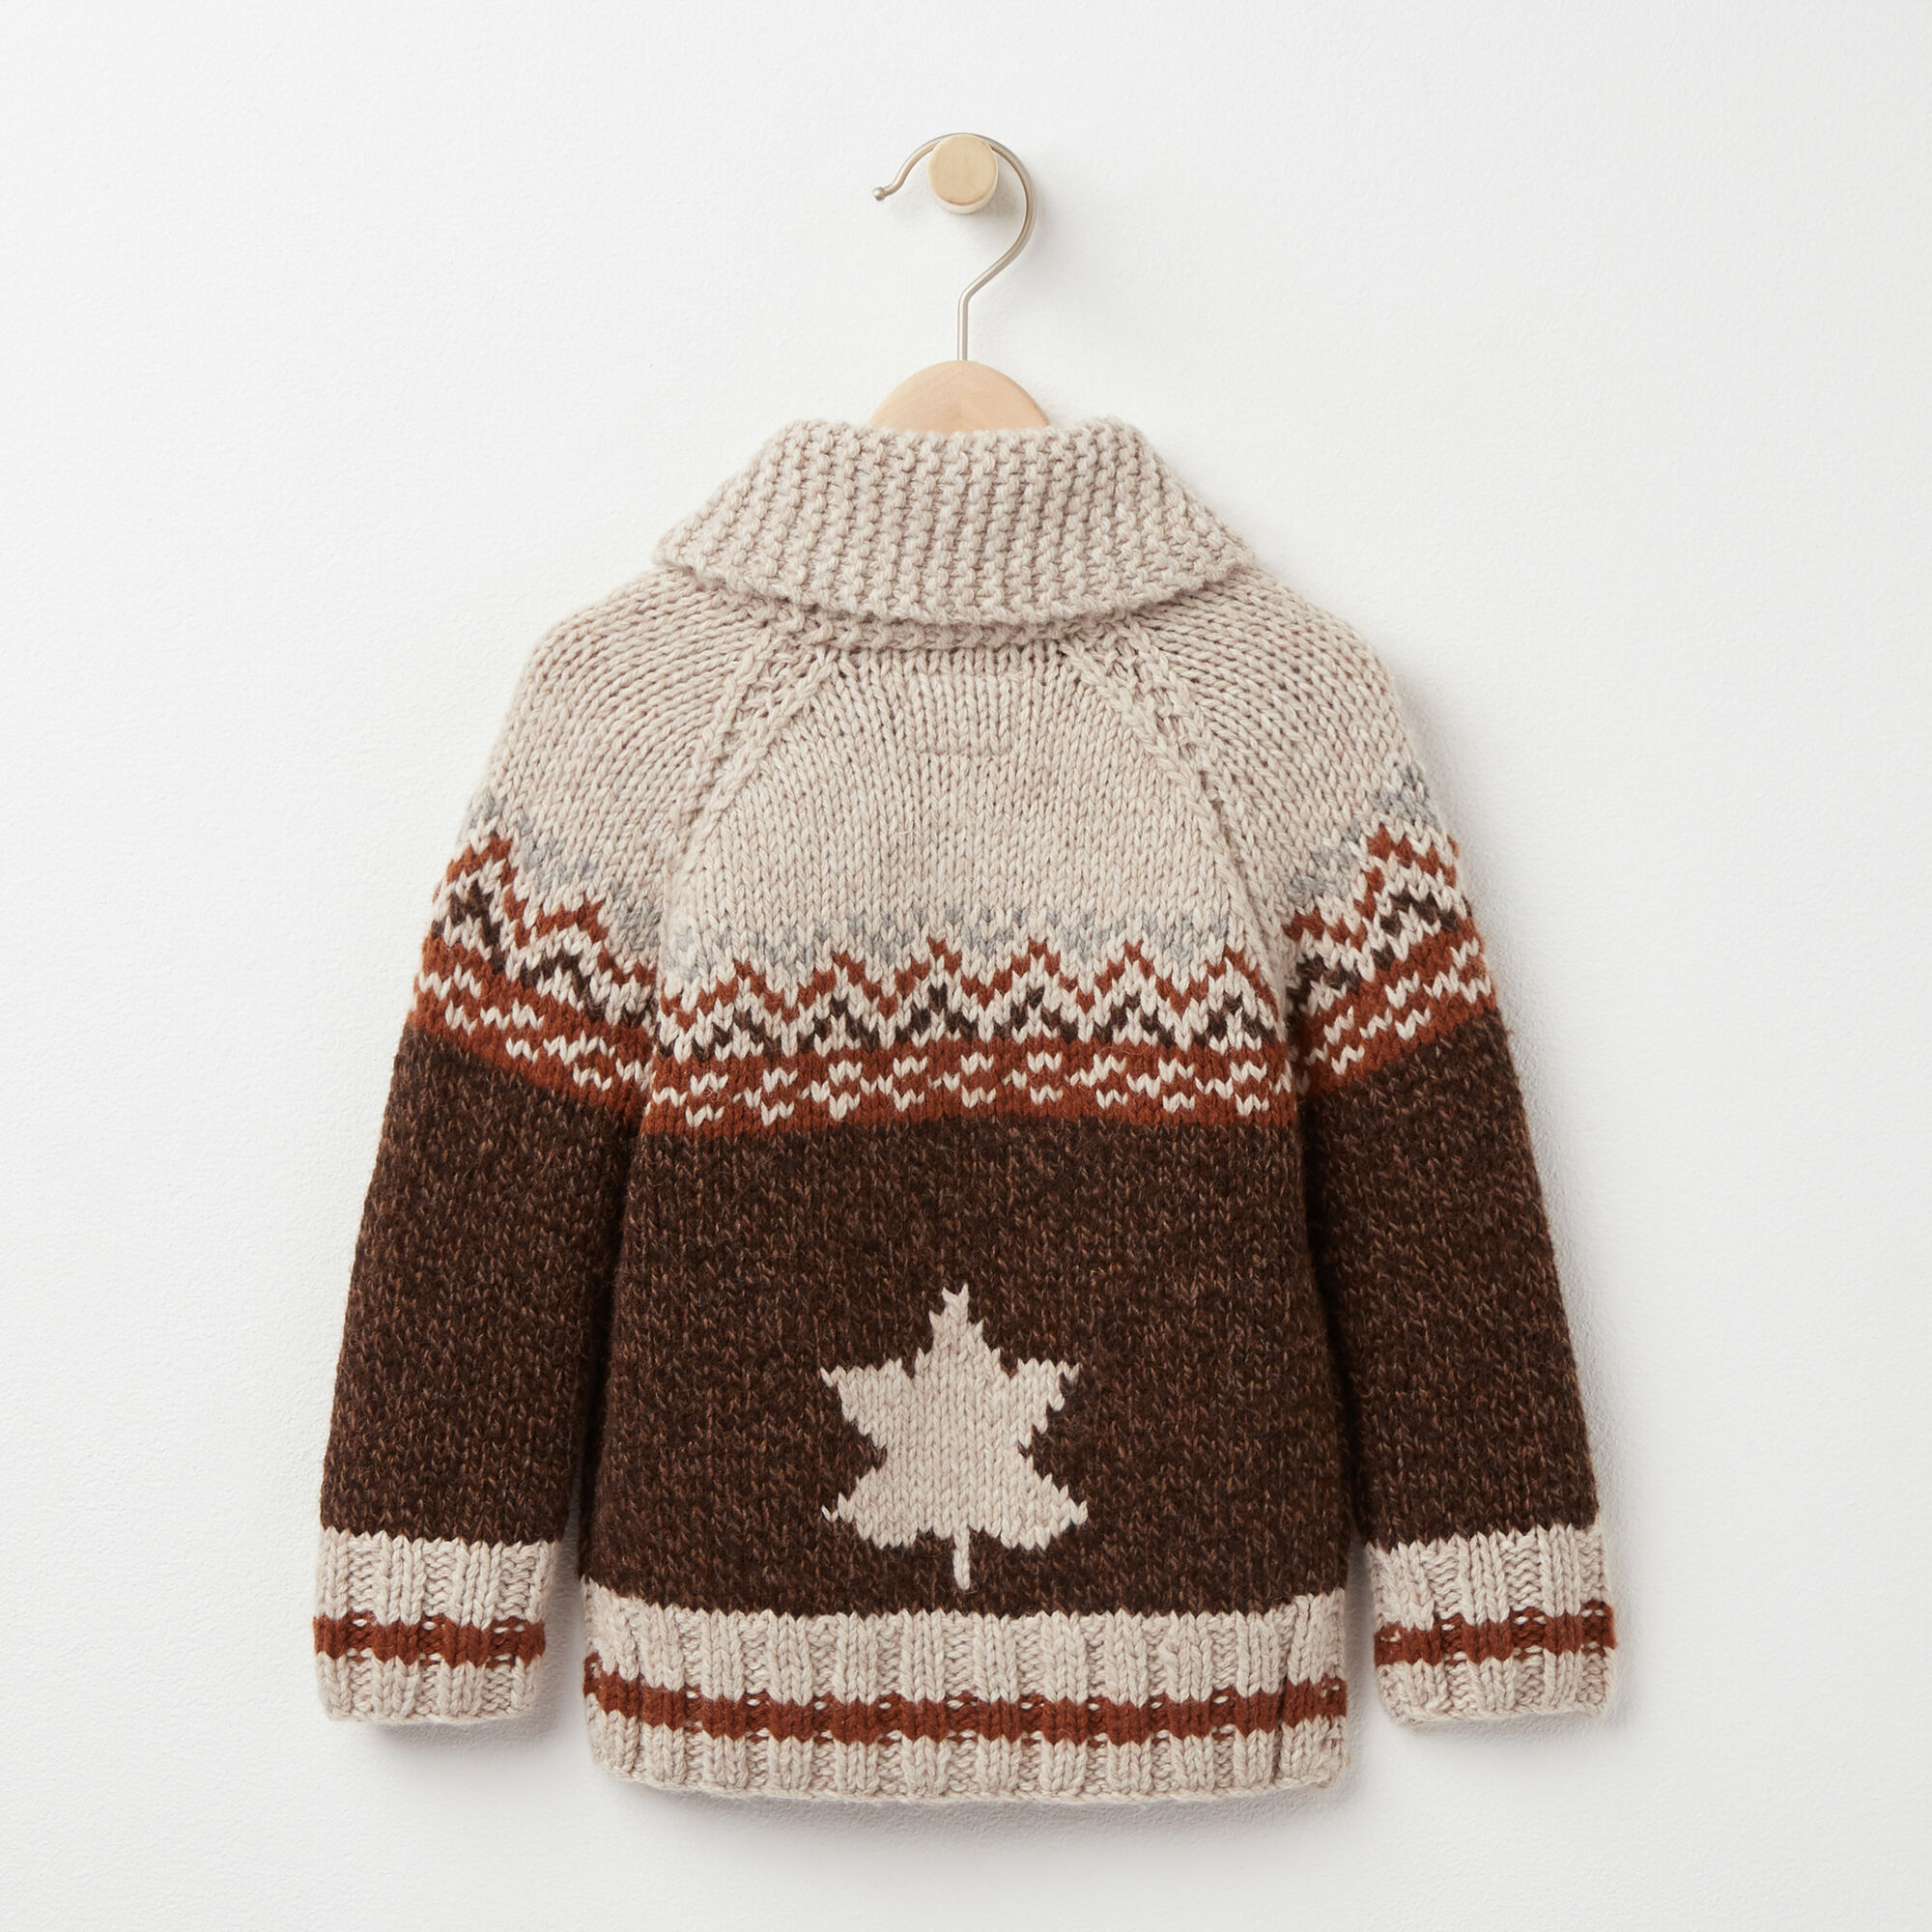 Toddler Mary Maxim Sweater